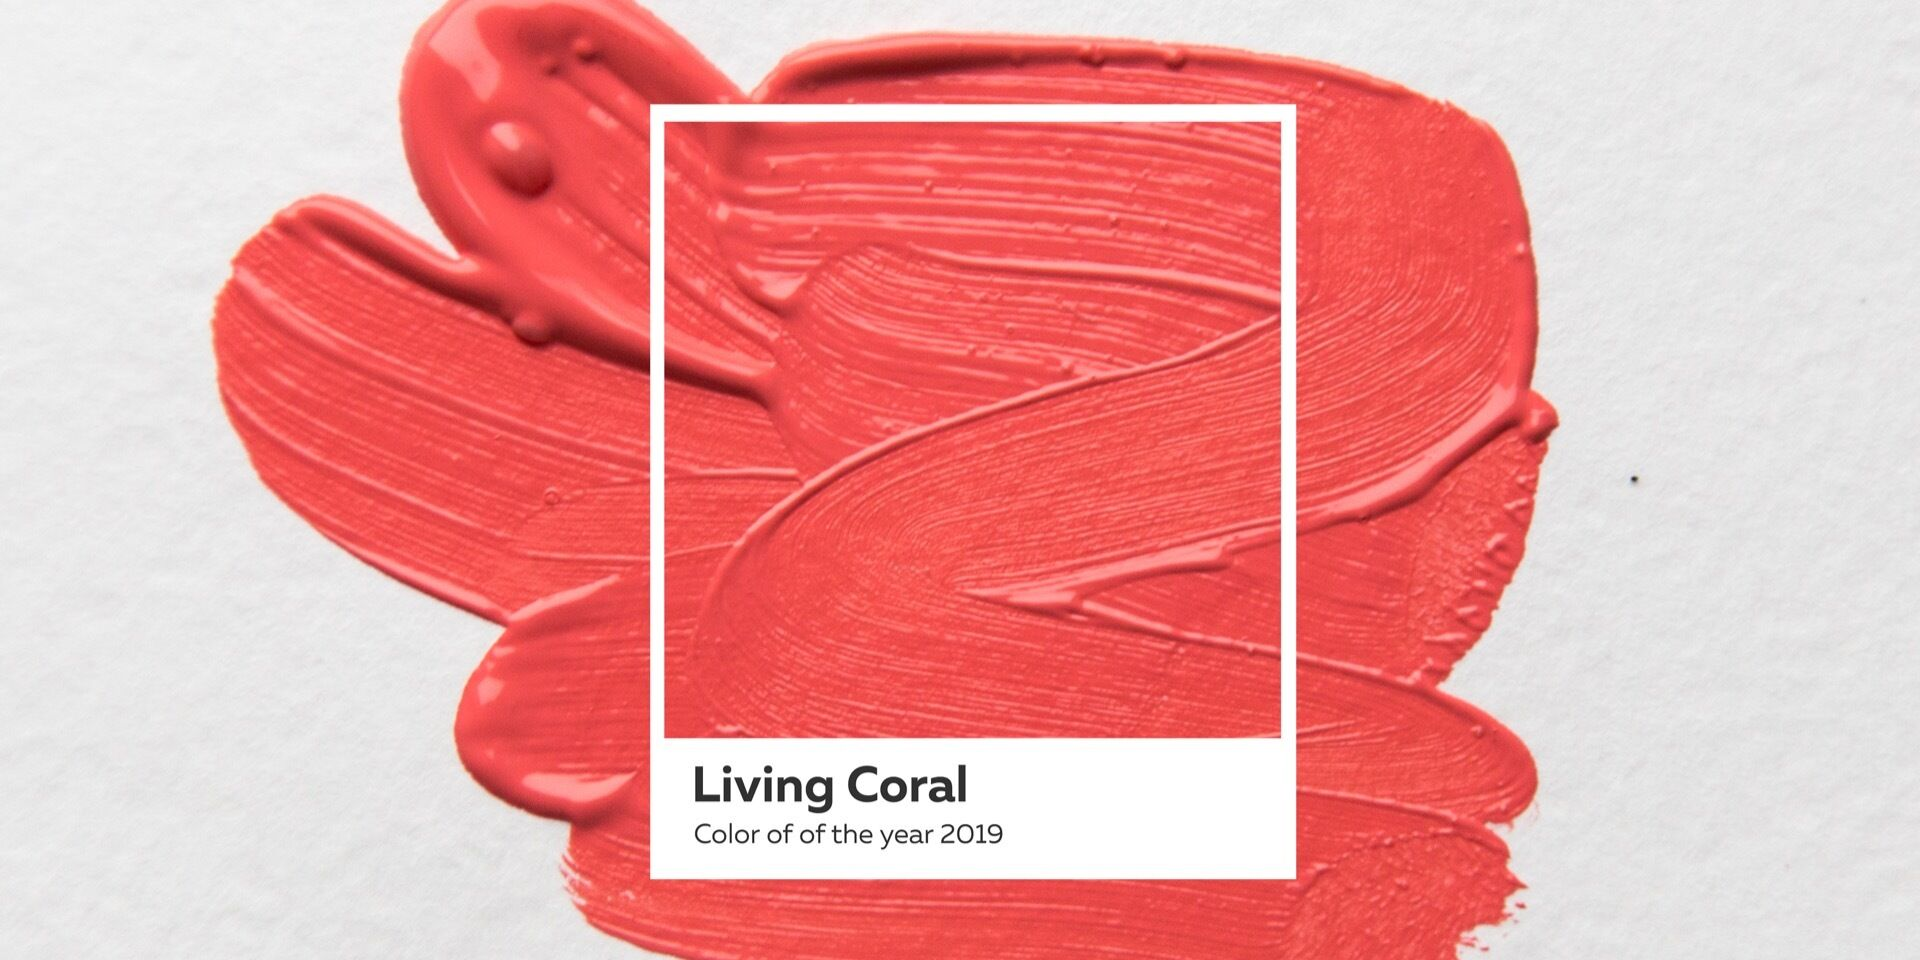 Color of the year 2019 – Living Coral